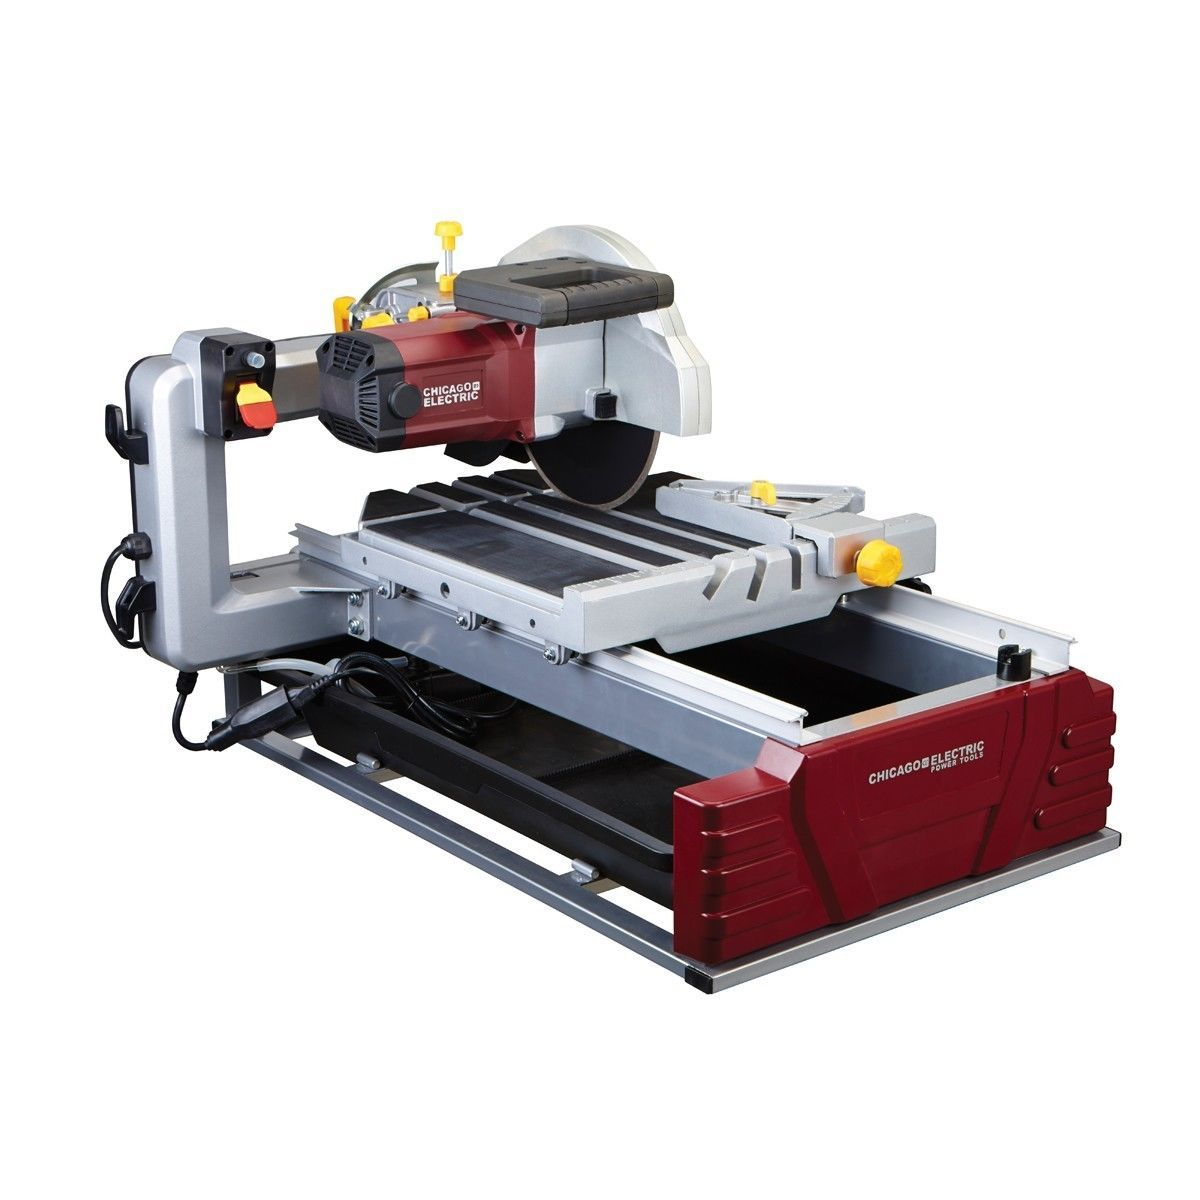 Primary image for Chicago Electric 10 in. 2.5 HP Tile/Brick Saw